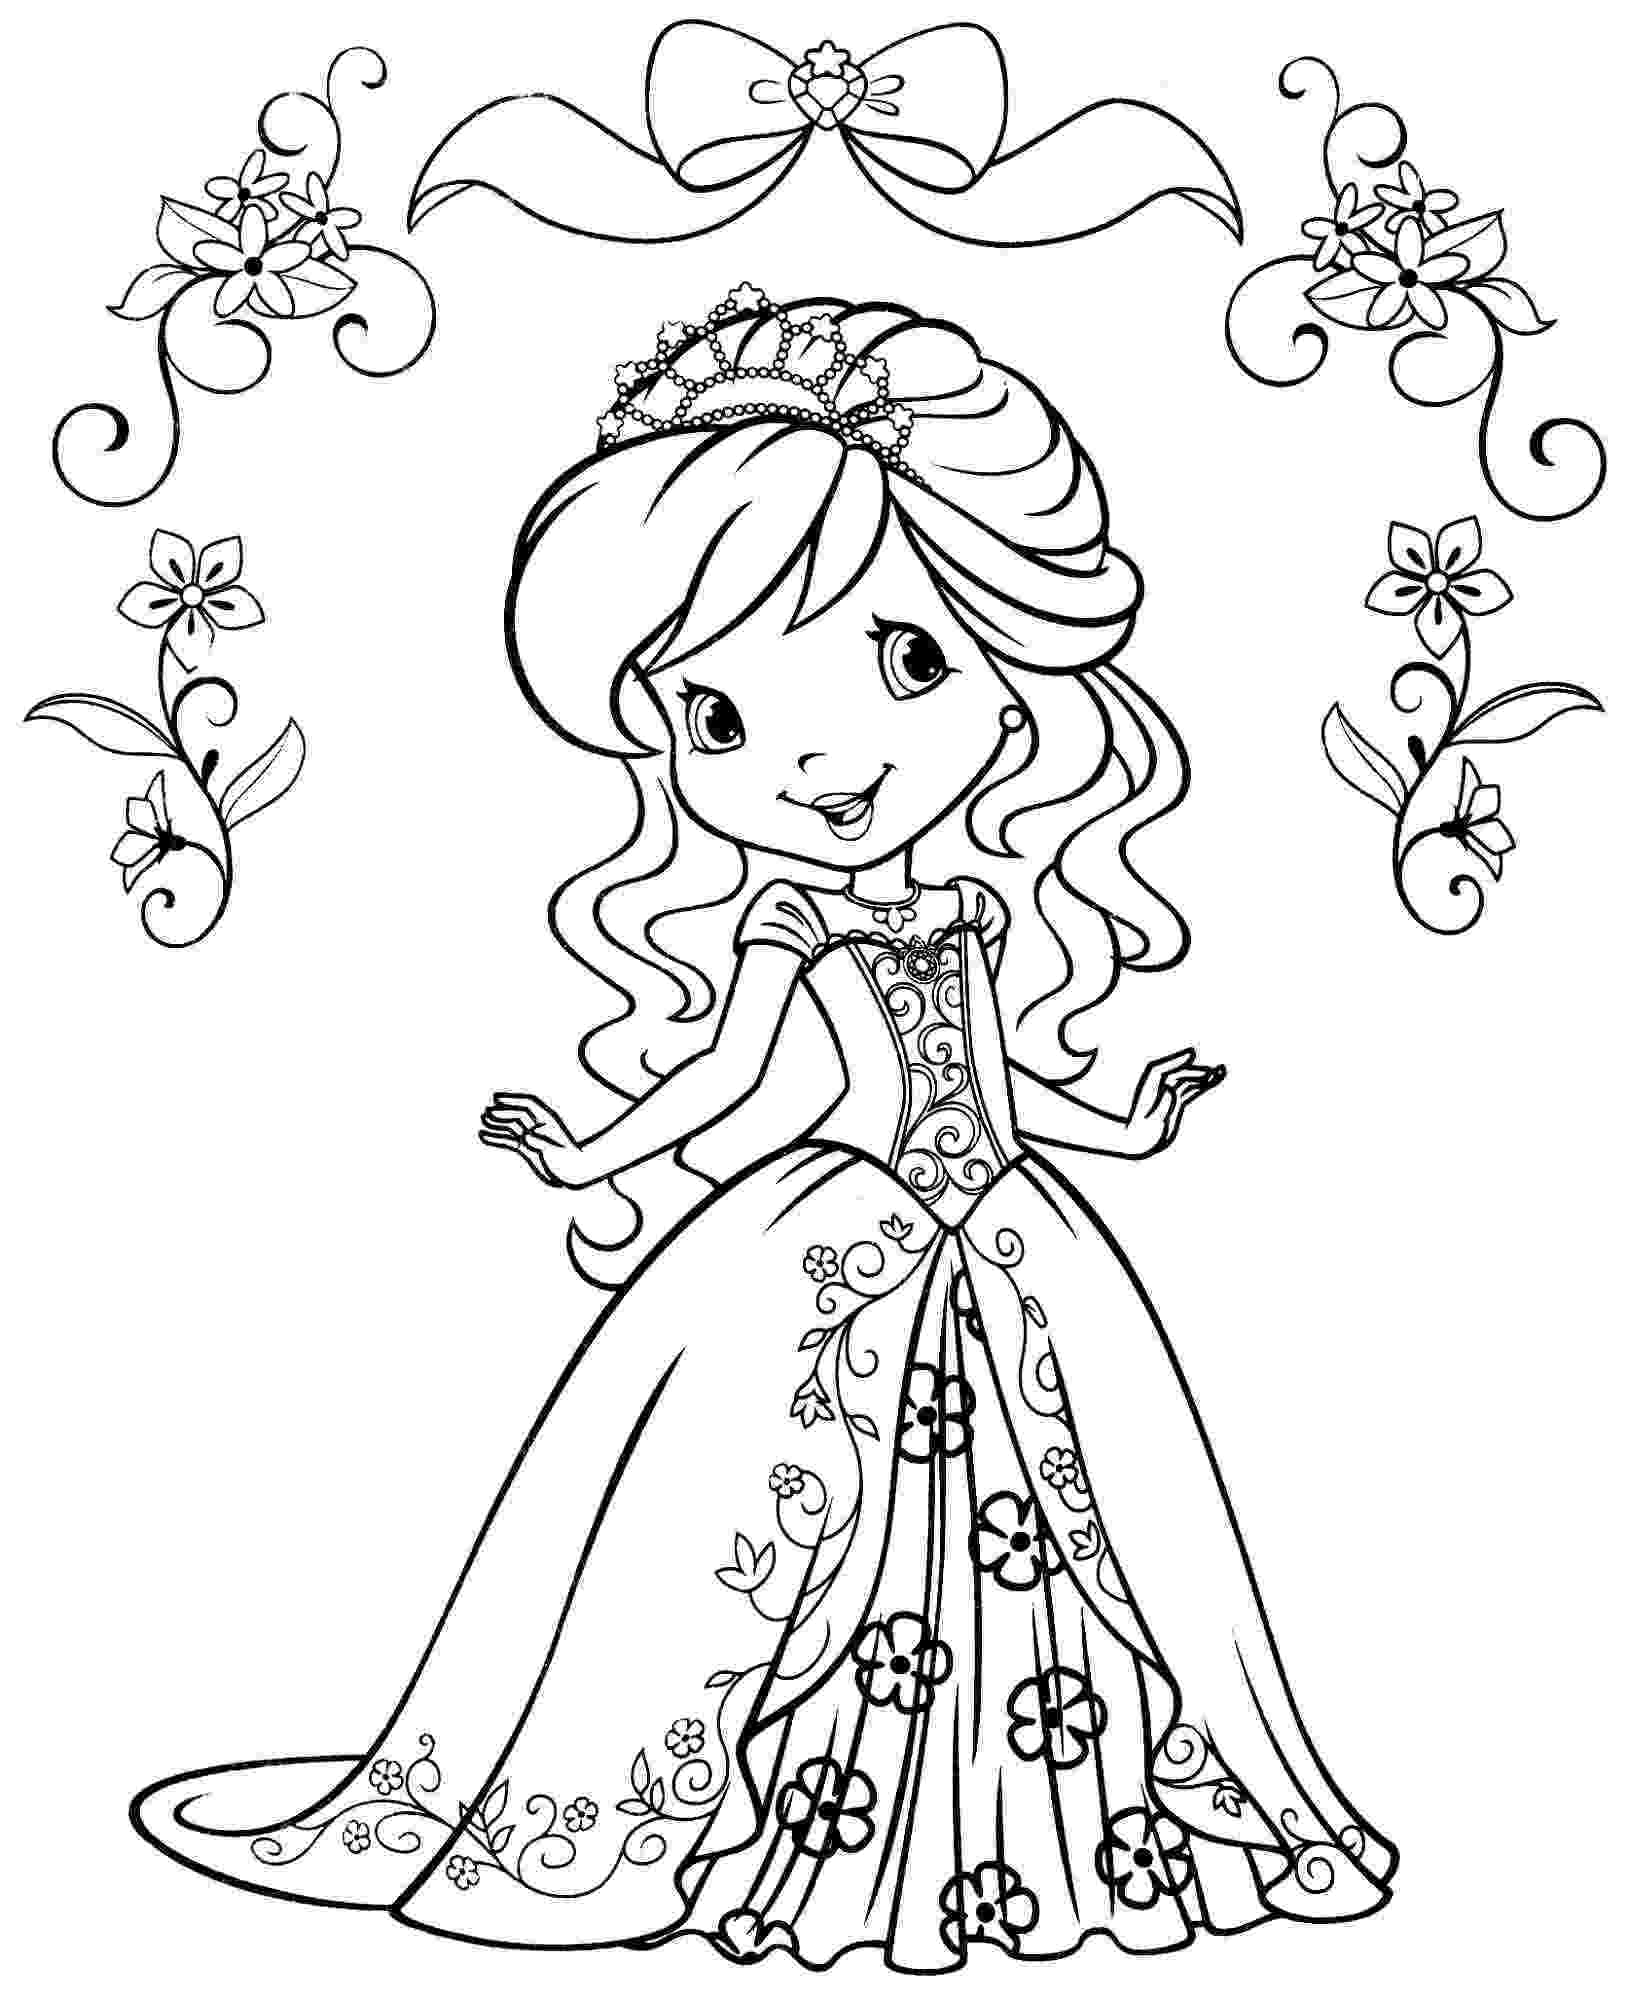 colering pages for girls coloring pages for 8910 year old girls to download and girls for pages colering